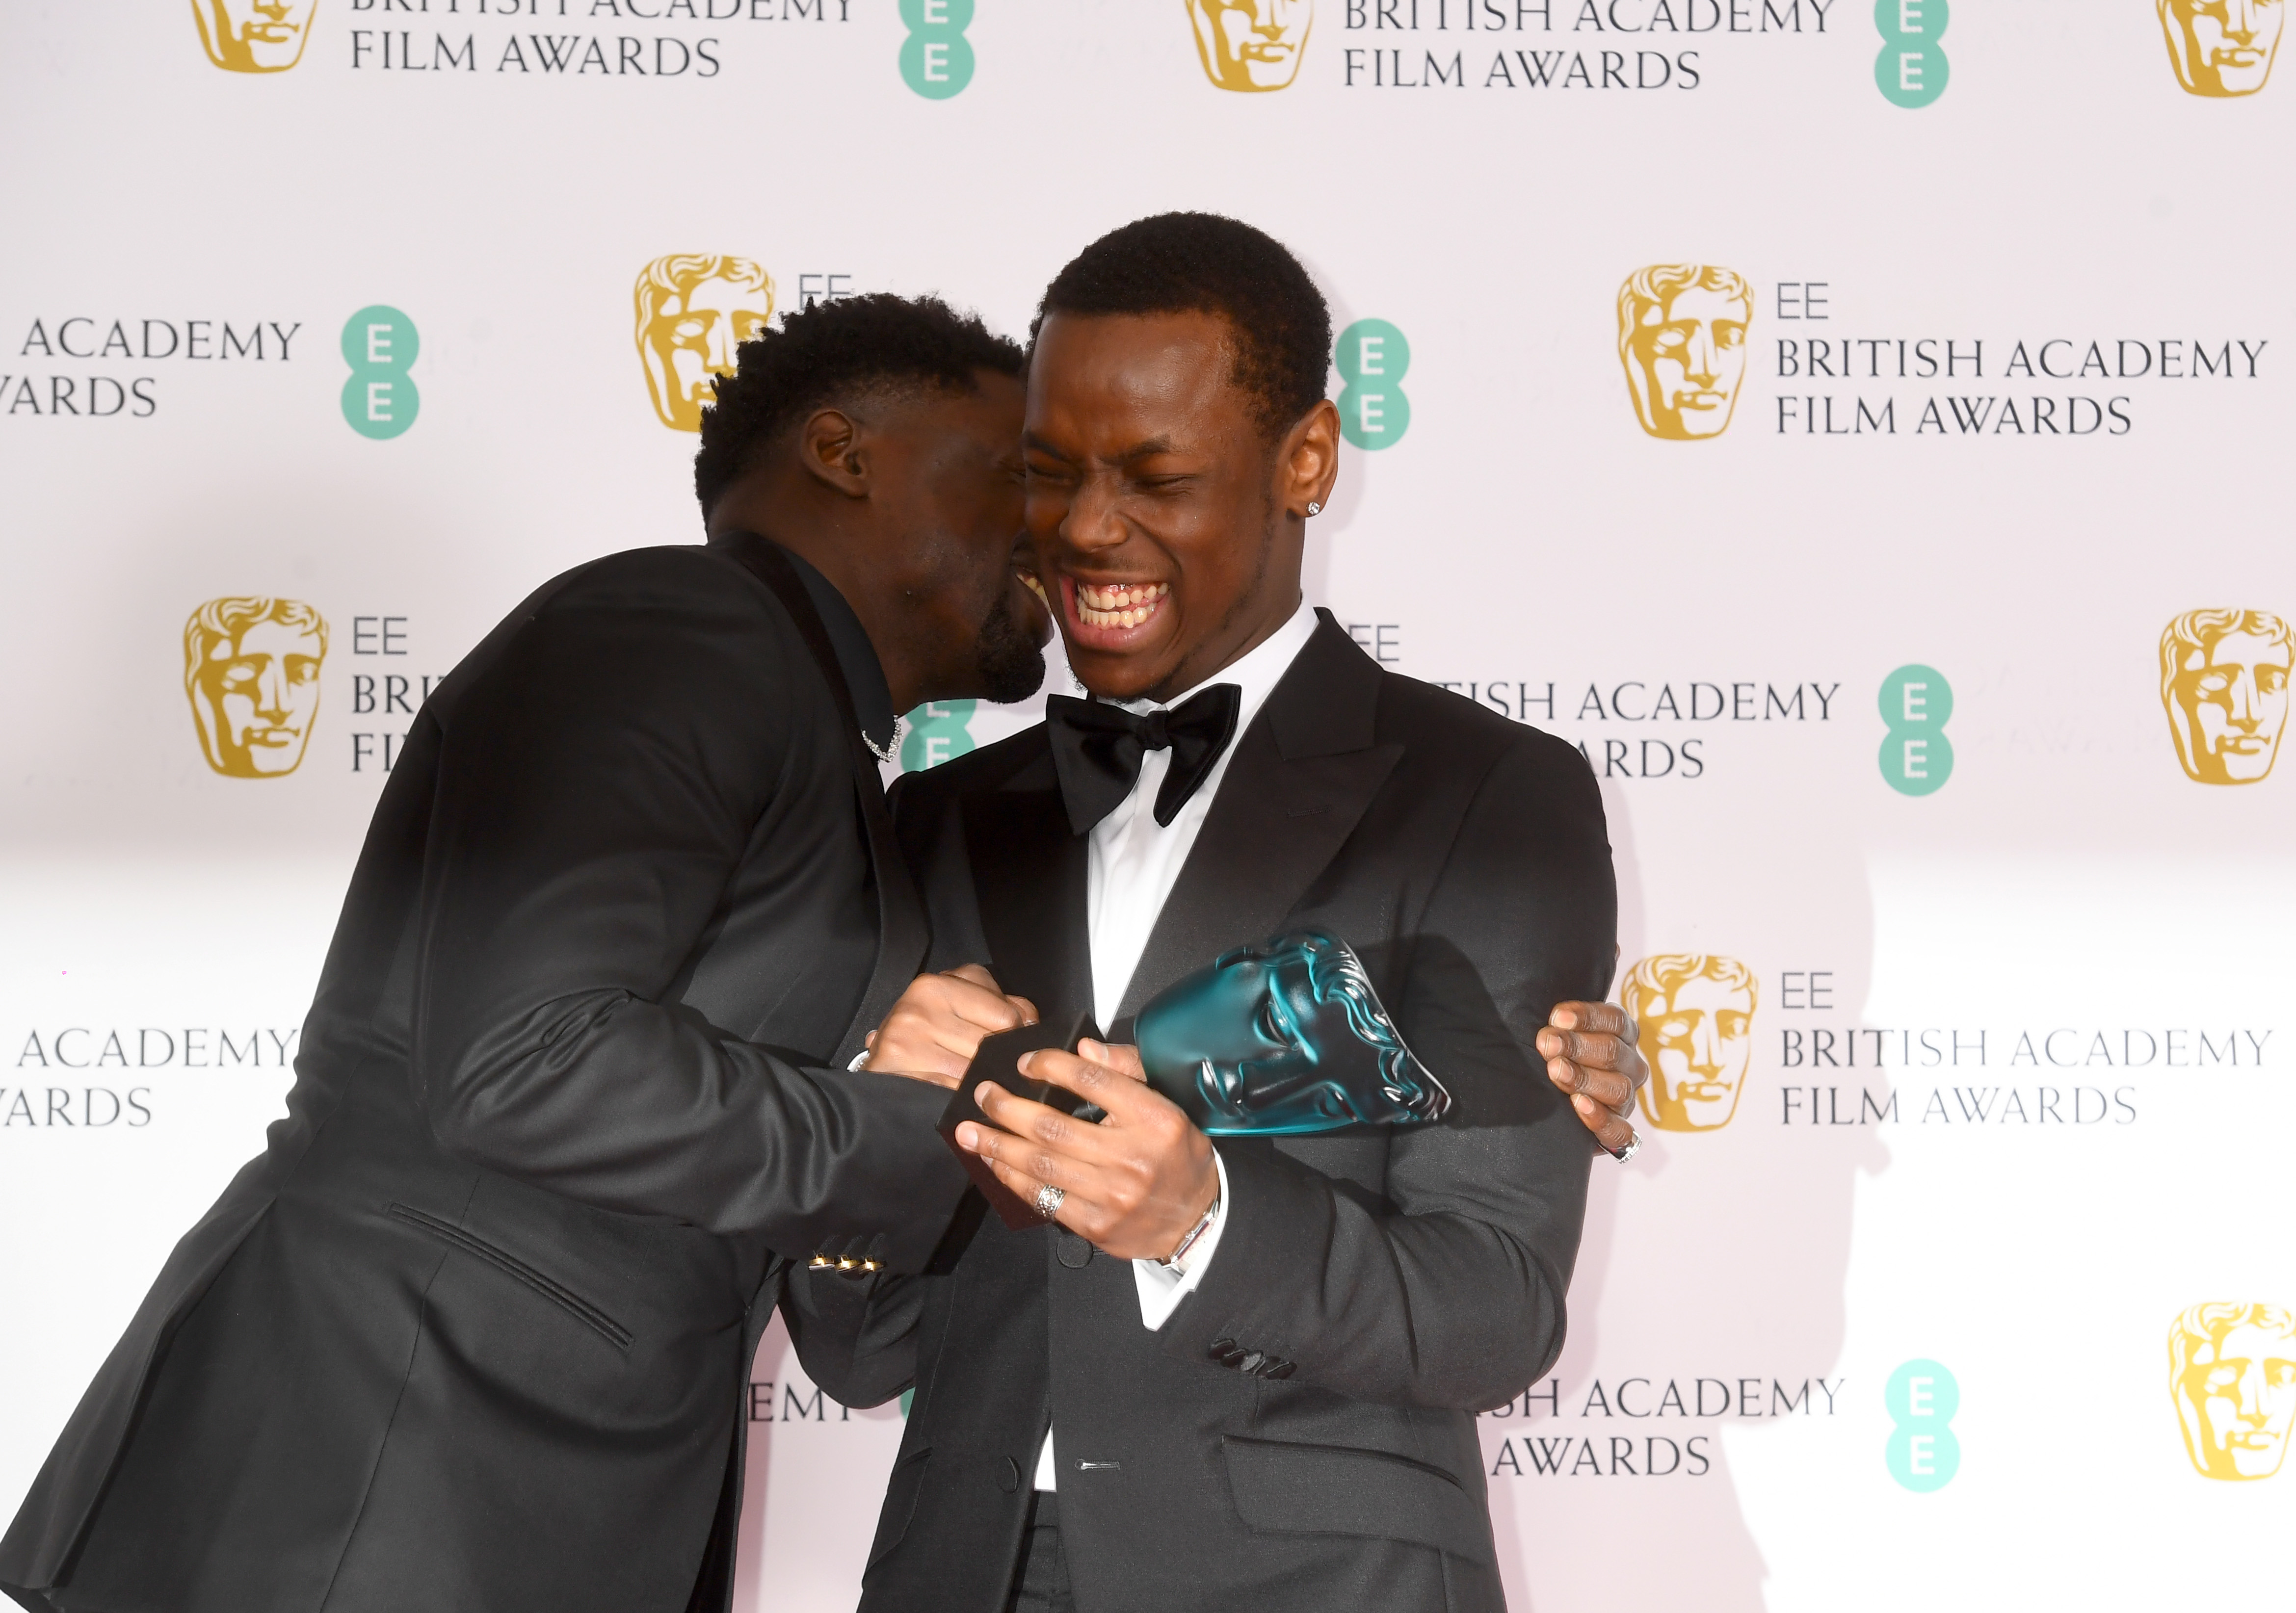 Daniel Kaluuya and Micheal Ward at an event for EE British Academy Film Awards (2020)